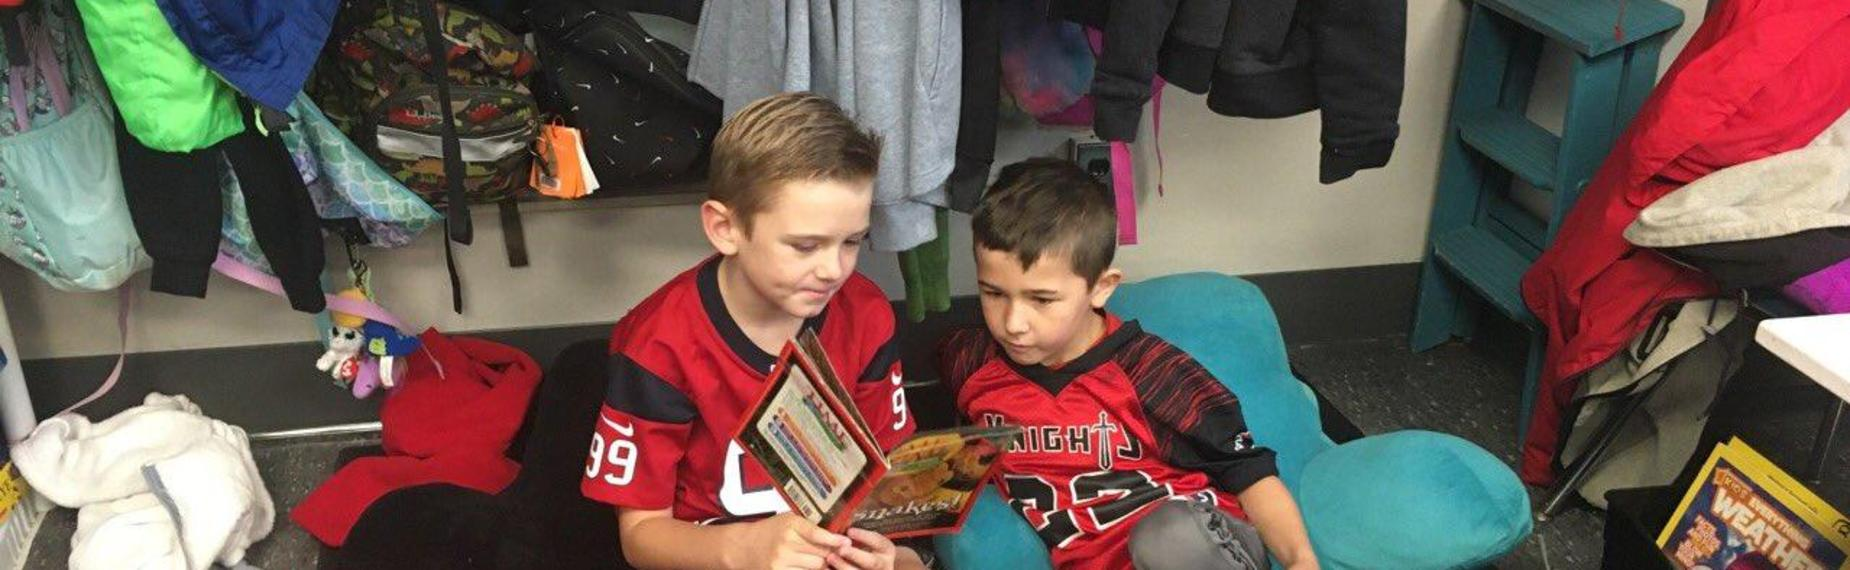 4th grade boys reading